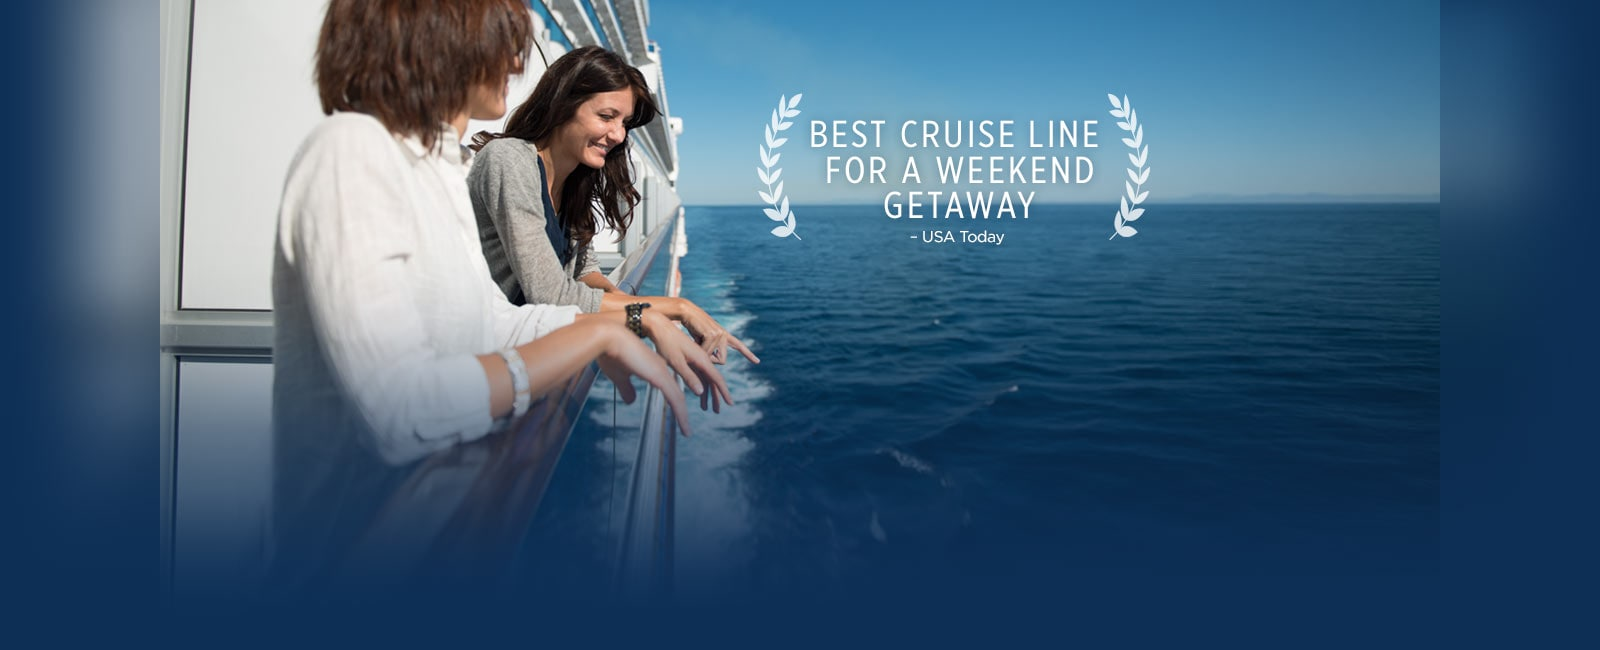 Princess cruises, the best cruiseline for a weekened getaway - women looking out to the ocean from a balcony railing